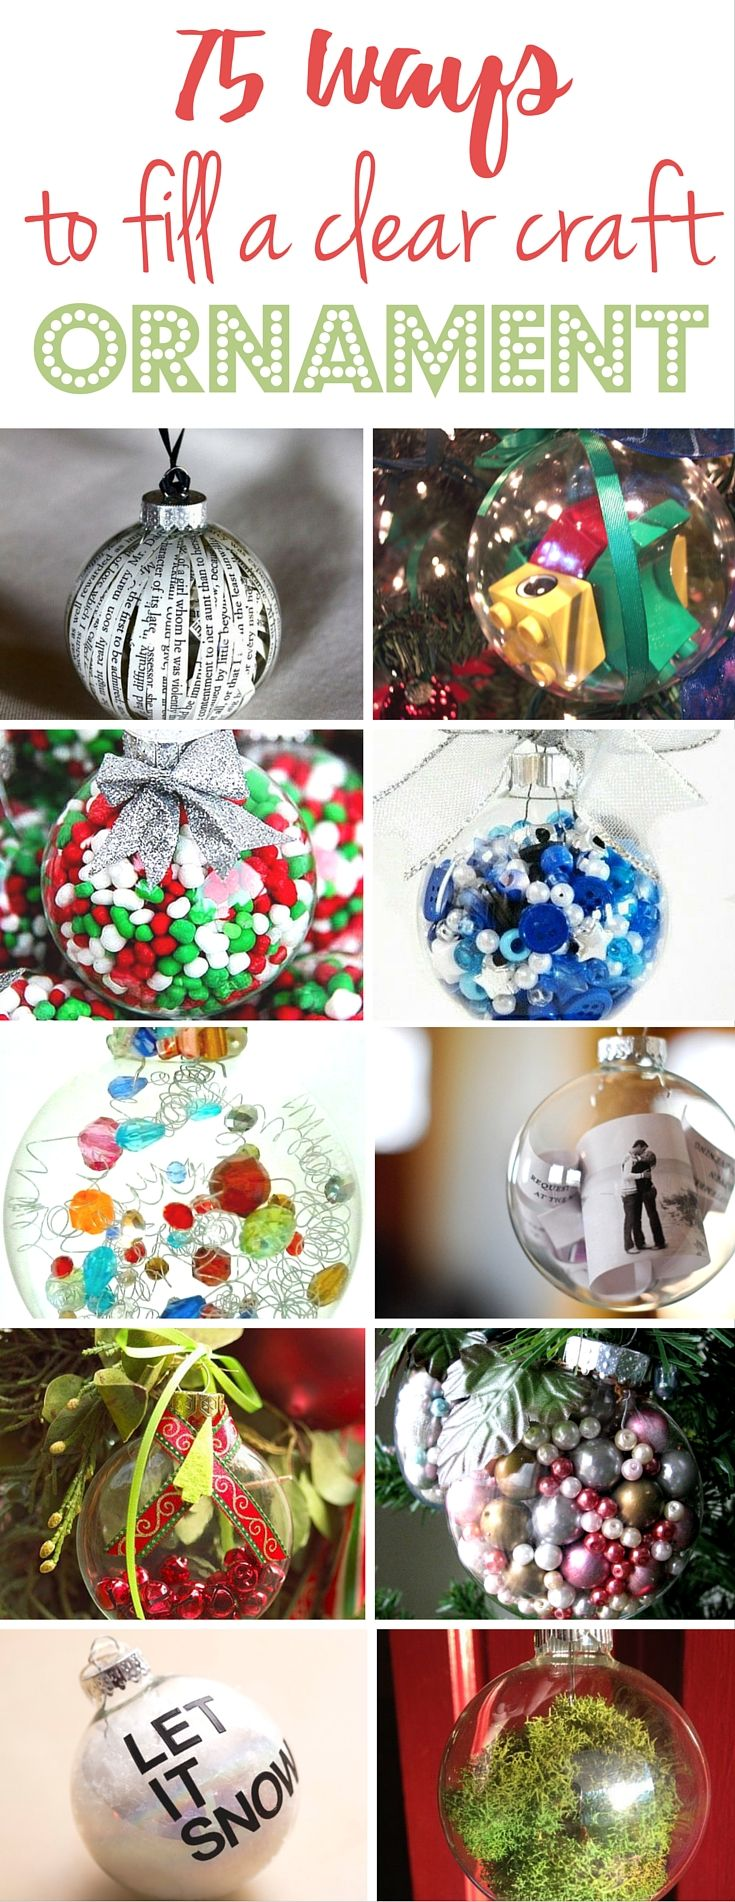 Acrylic clear ornaments - 75 Ways To Fill A Clear Craft Ornament And Make A Homemade Christmas Ornament Christmas